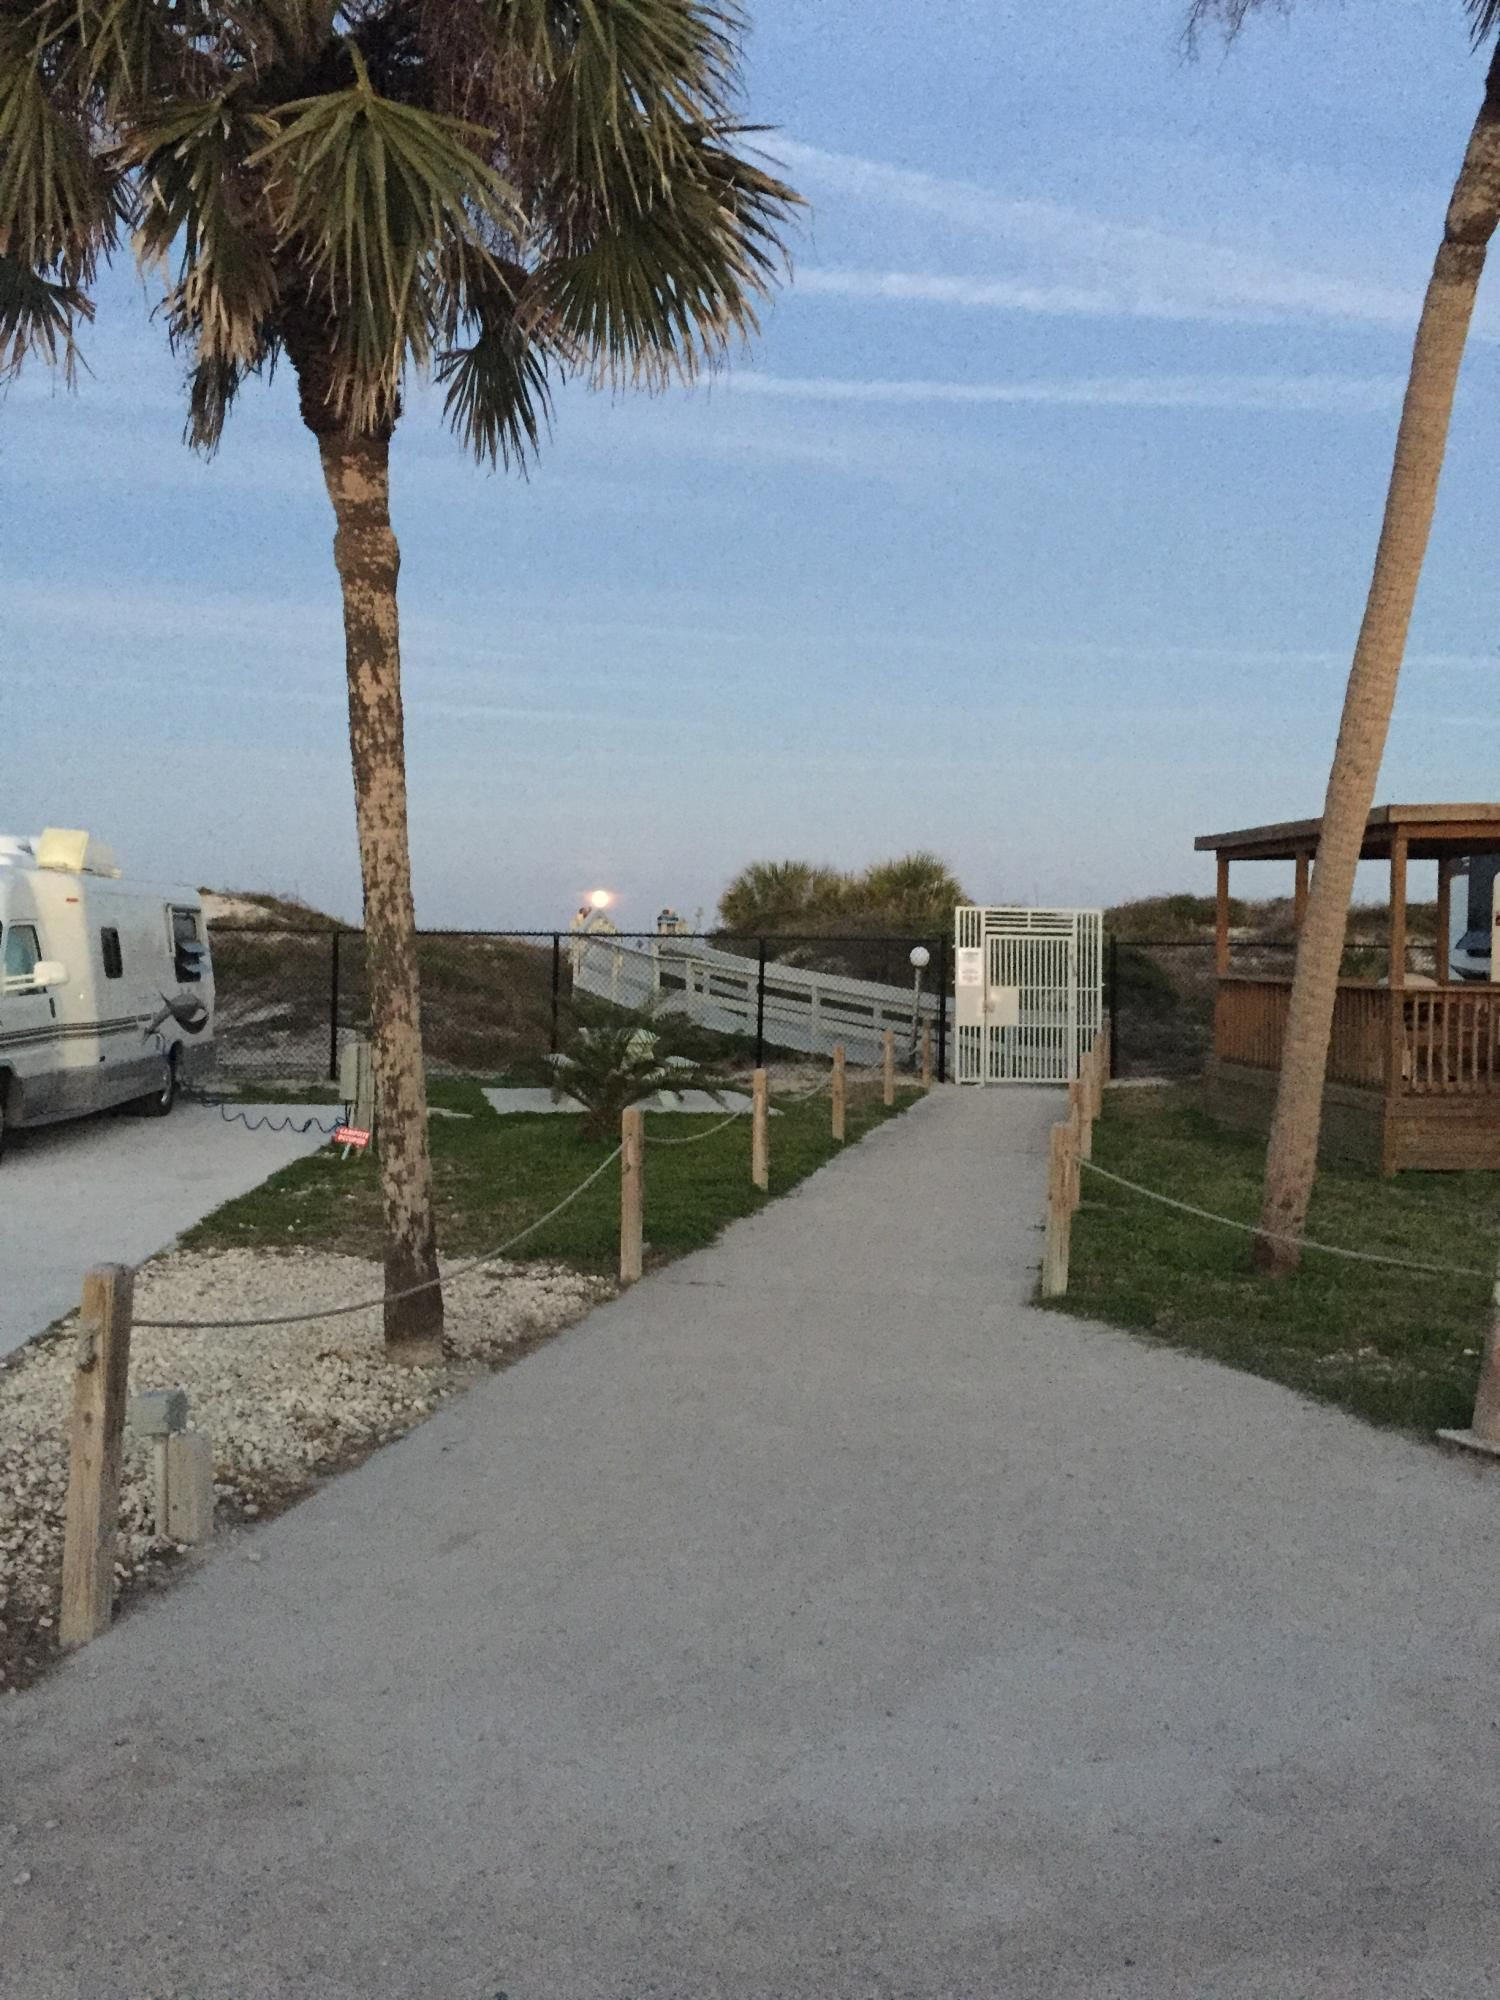 St. Augustine, Florida Rv parks and campgrounds, Ocean